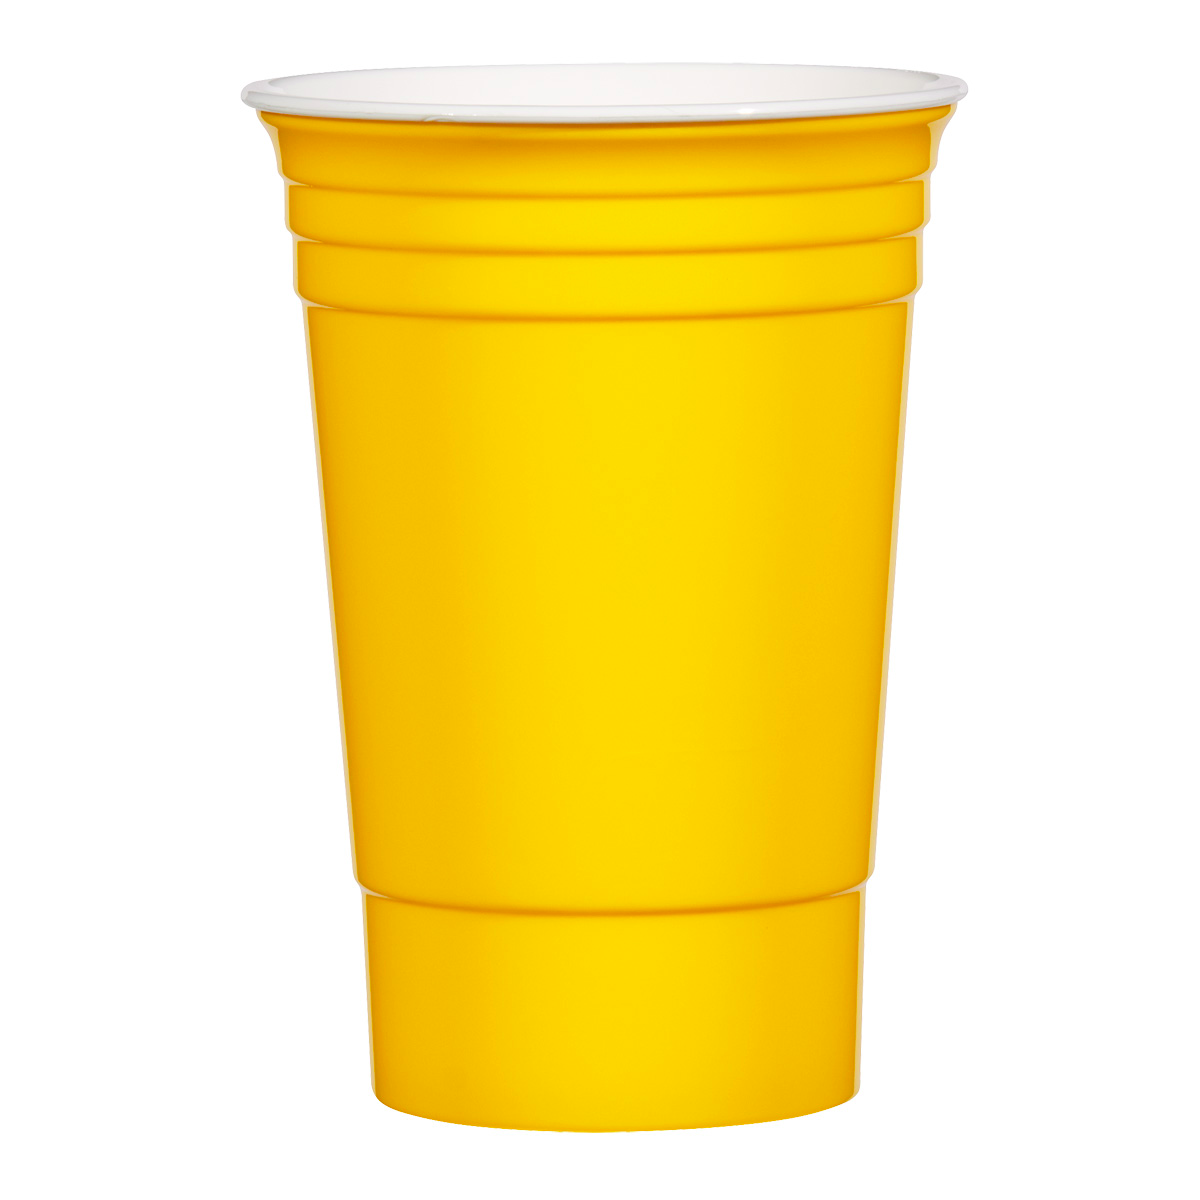 oz double wall. Cup clipart stadium